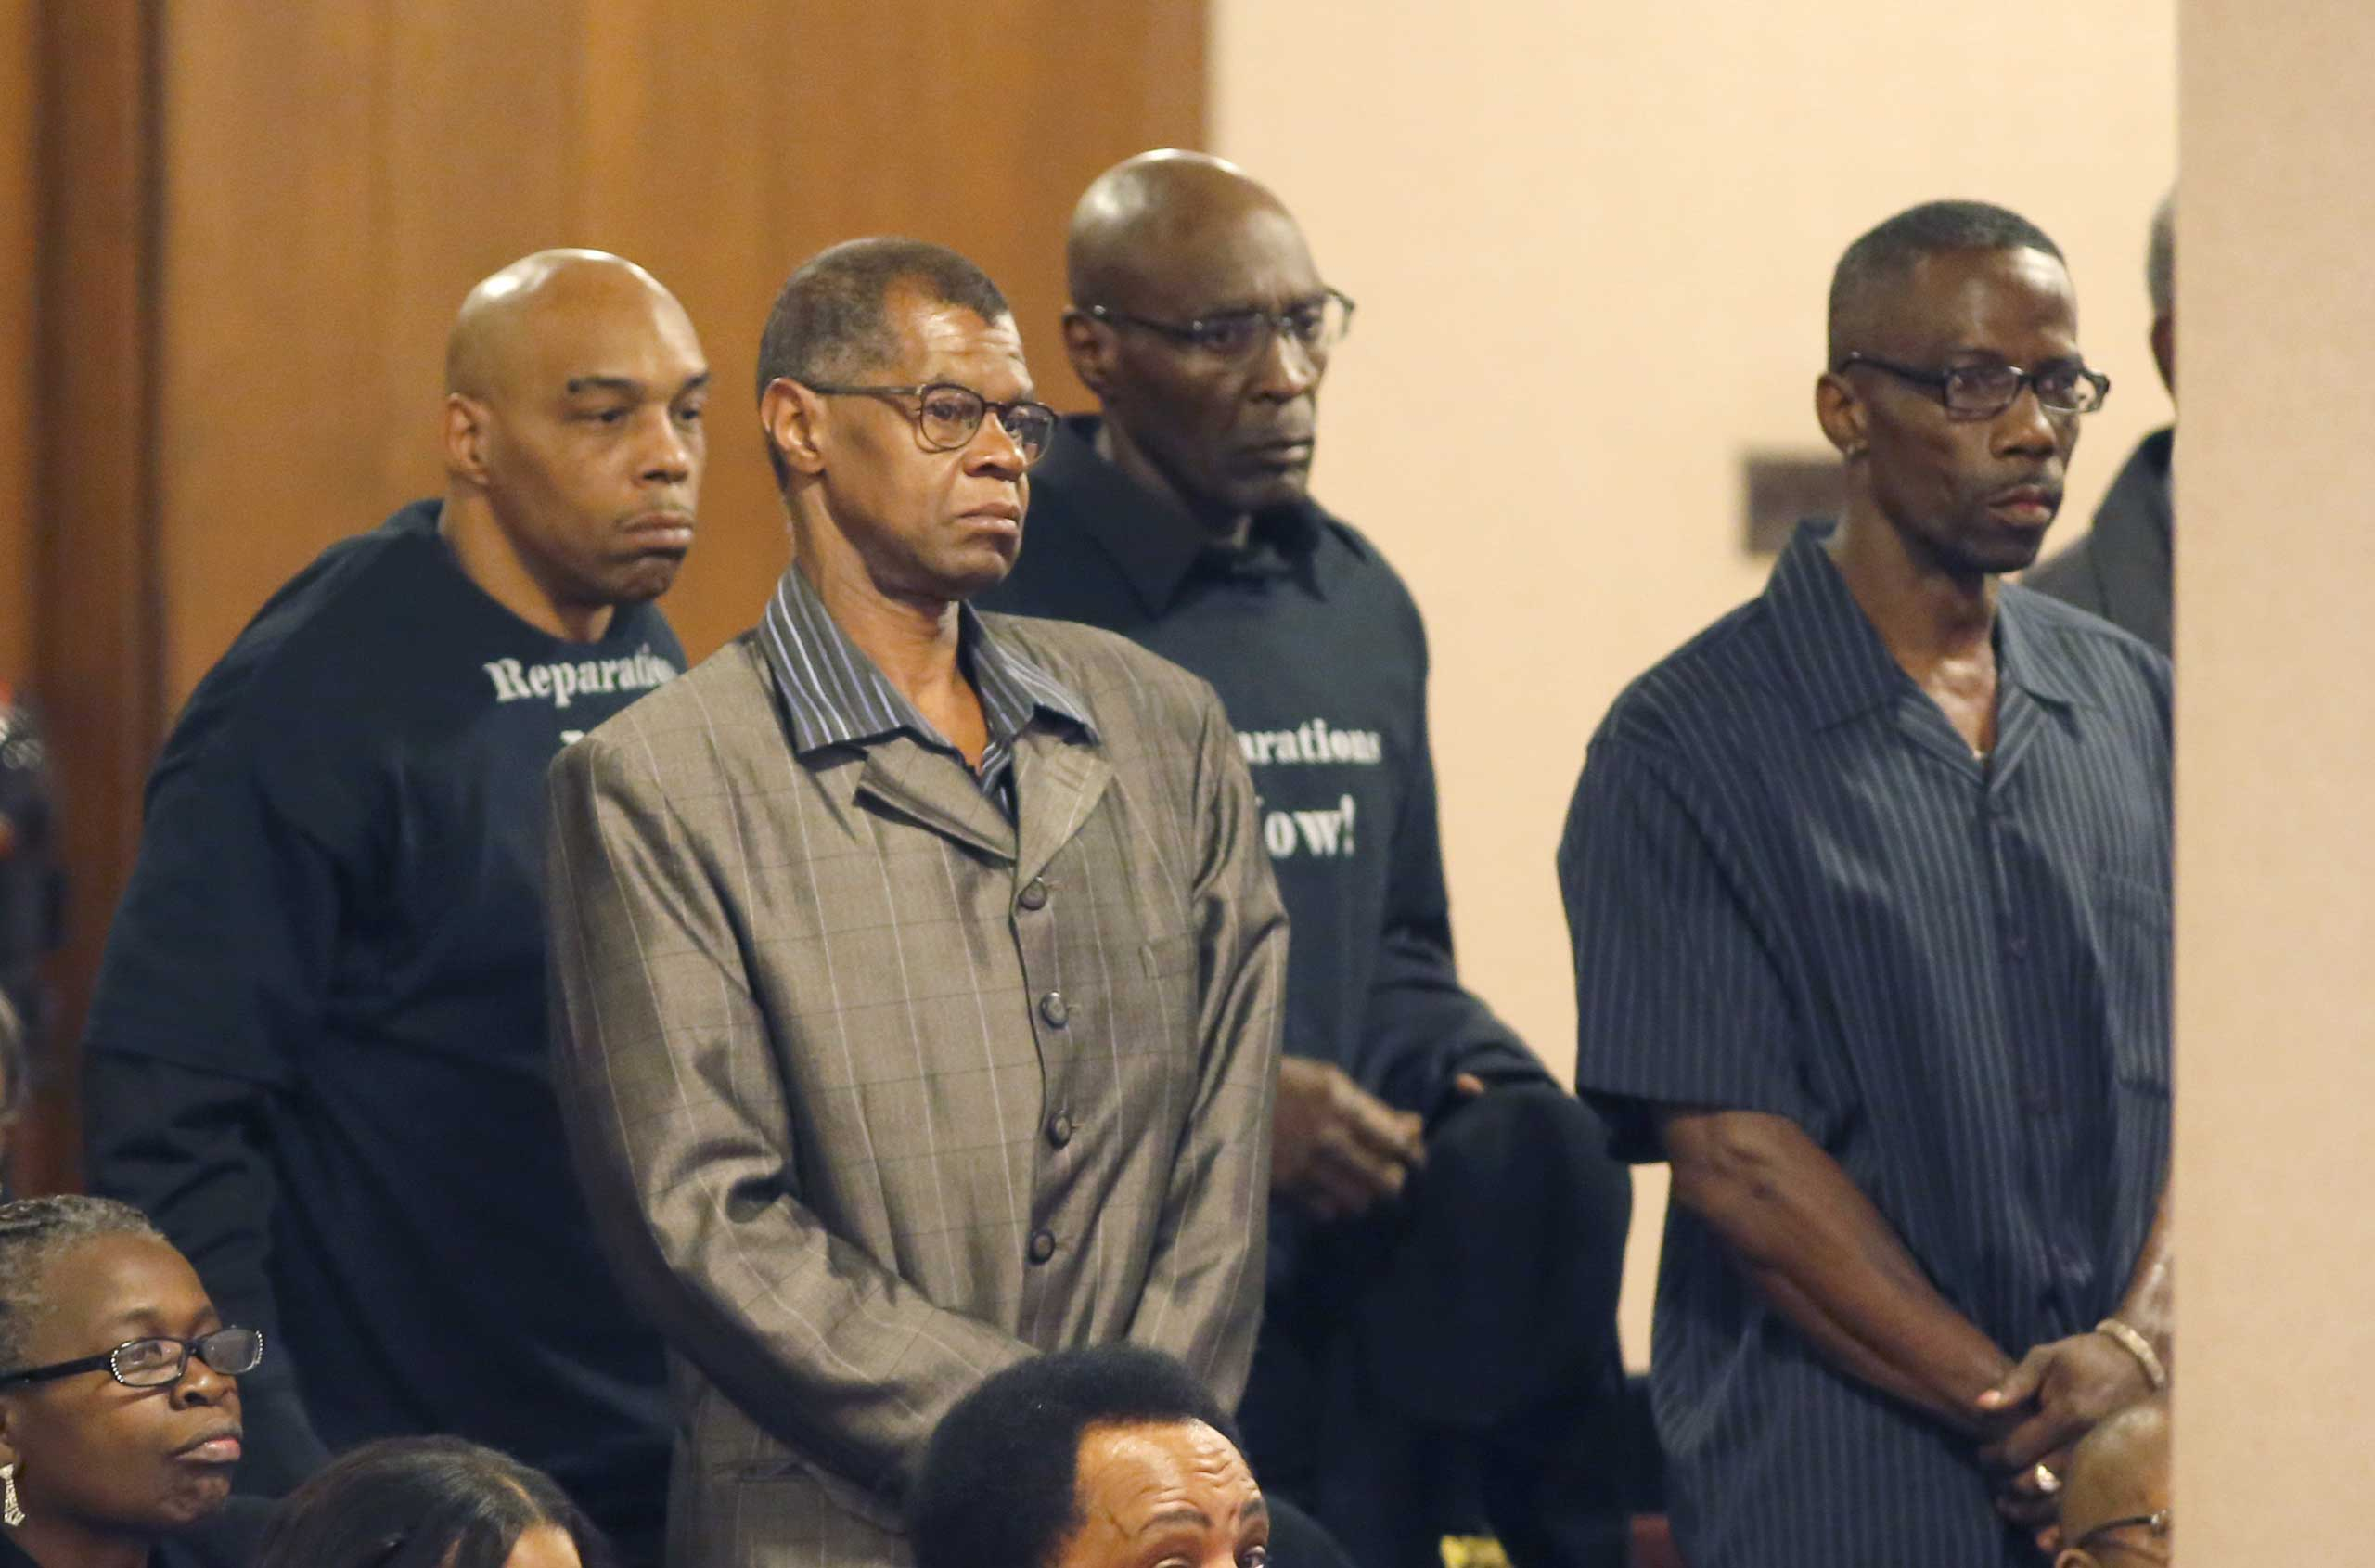 Men identified as victims of police torture under the command of retired Chicago Police Commander Jon Burge, stand to be recognized by the Chicago City Council city council, May 6, 2015, in Chicago.